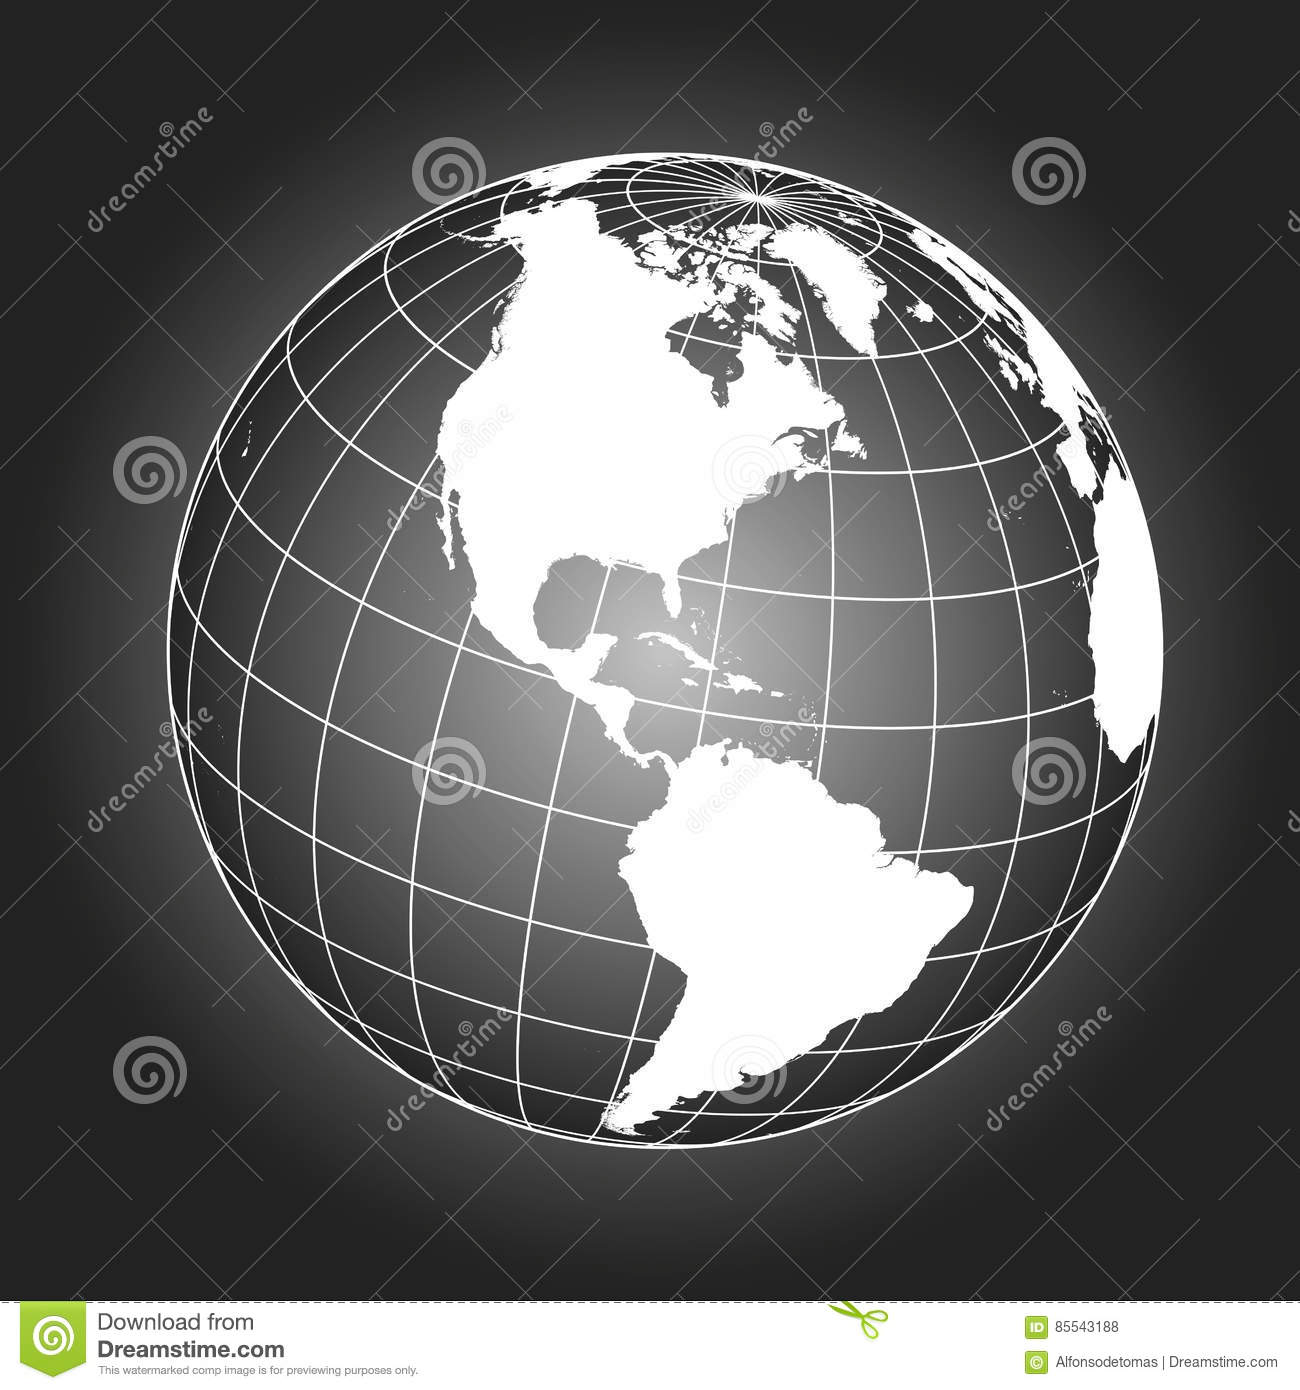 North America Map In Black And White Stock Vector - Illustration of ...